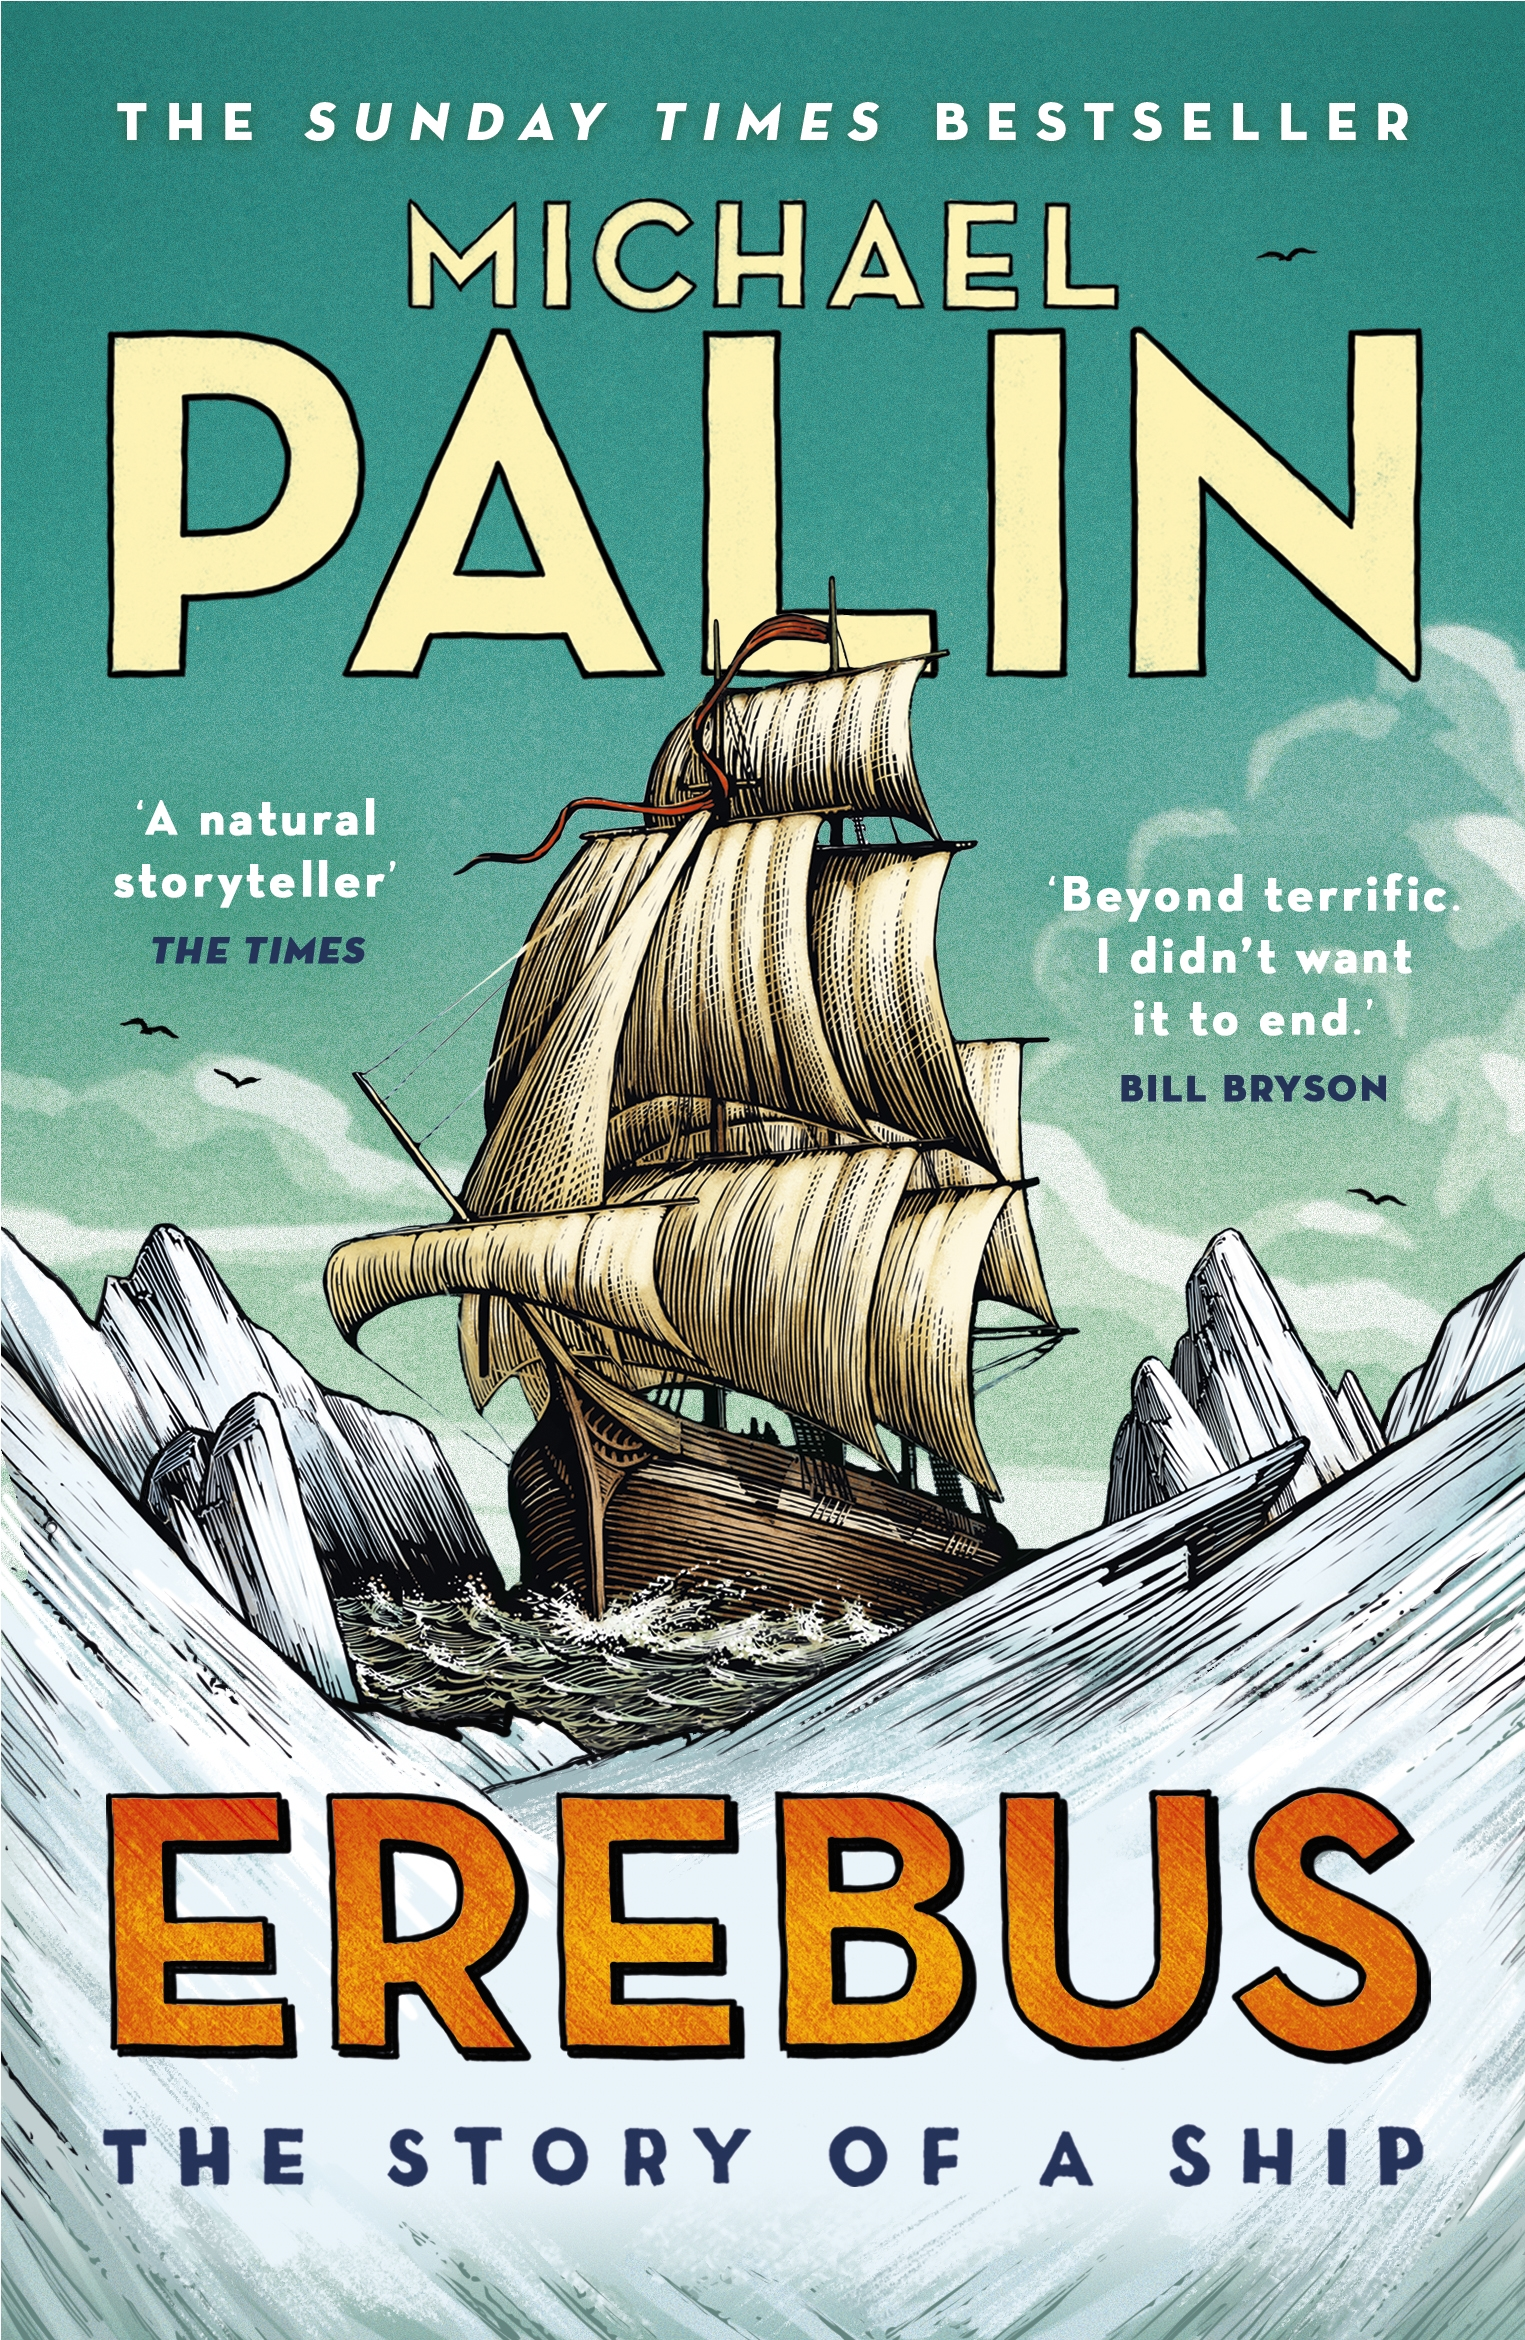 Erebus The Story Of A Ship By Michael Palin Penguin Books New Zealand